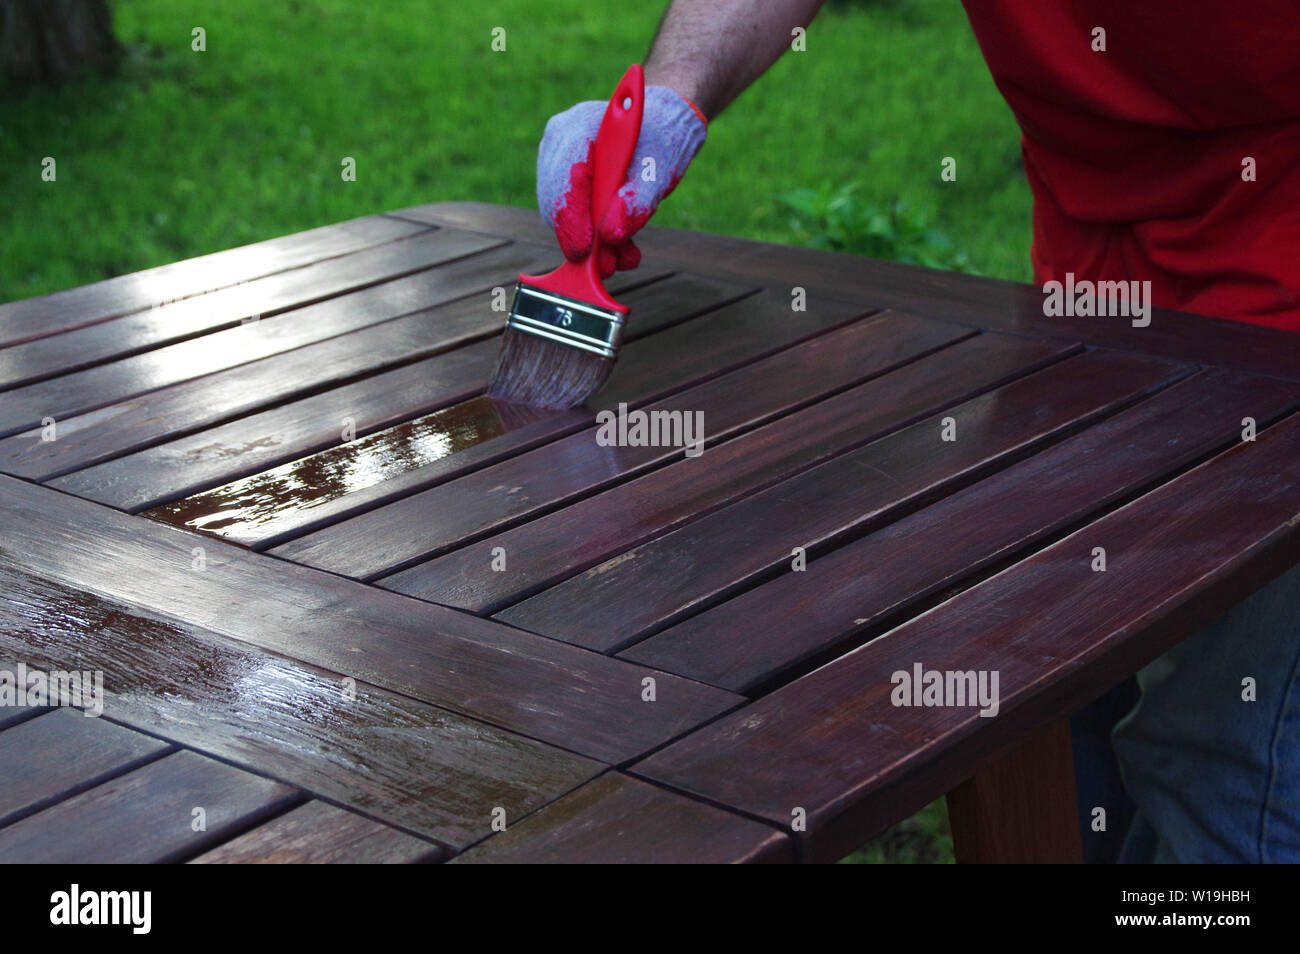 Garden Furniture Brush Painting Hand Painting The Wooden Table Outdoor Stock Photo Alamy